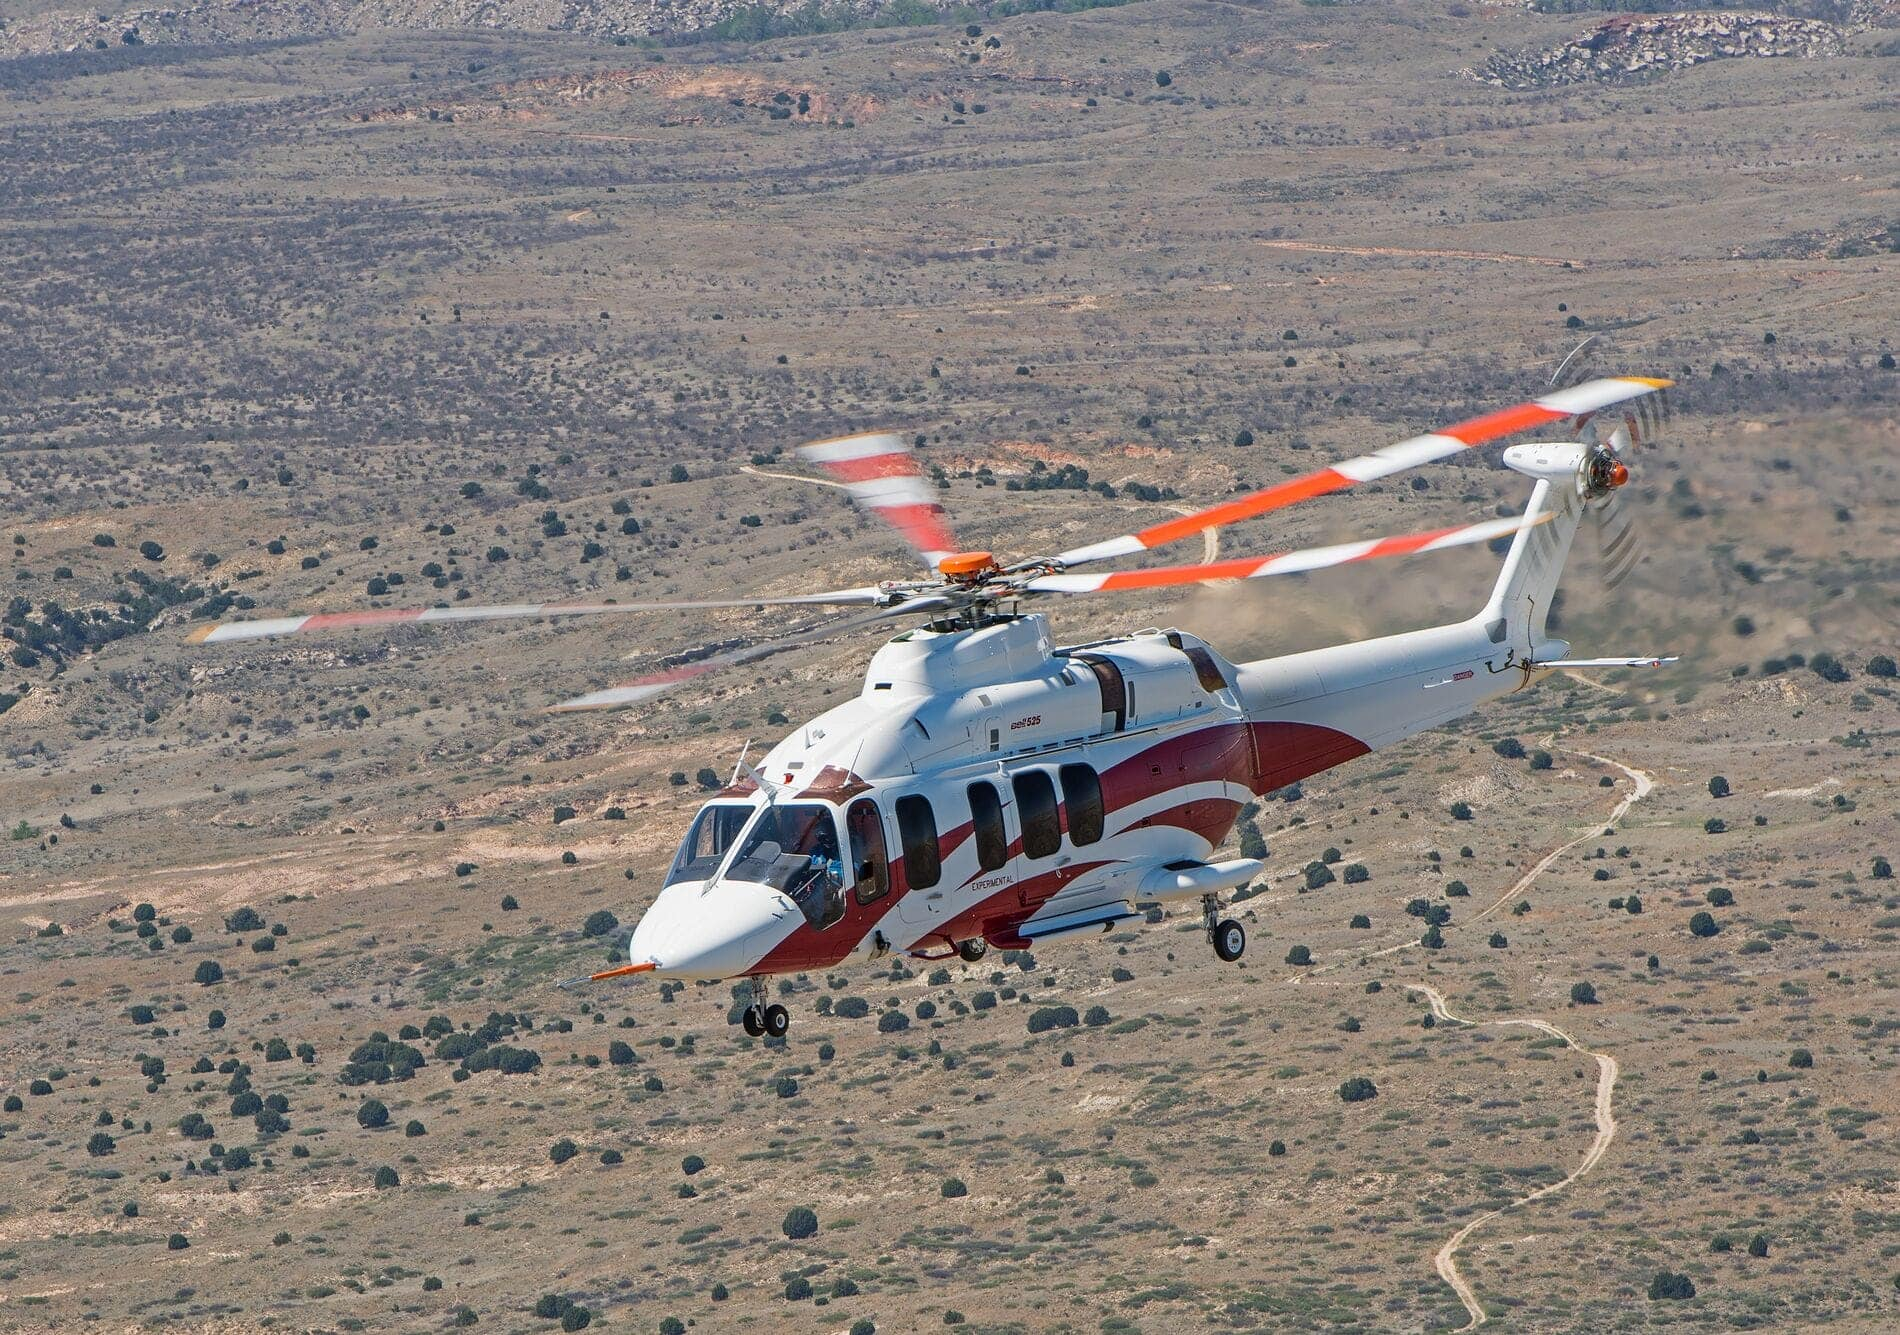 Bell 525 White In Flight Over Desert